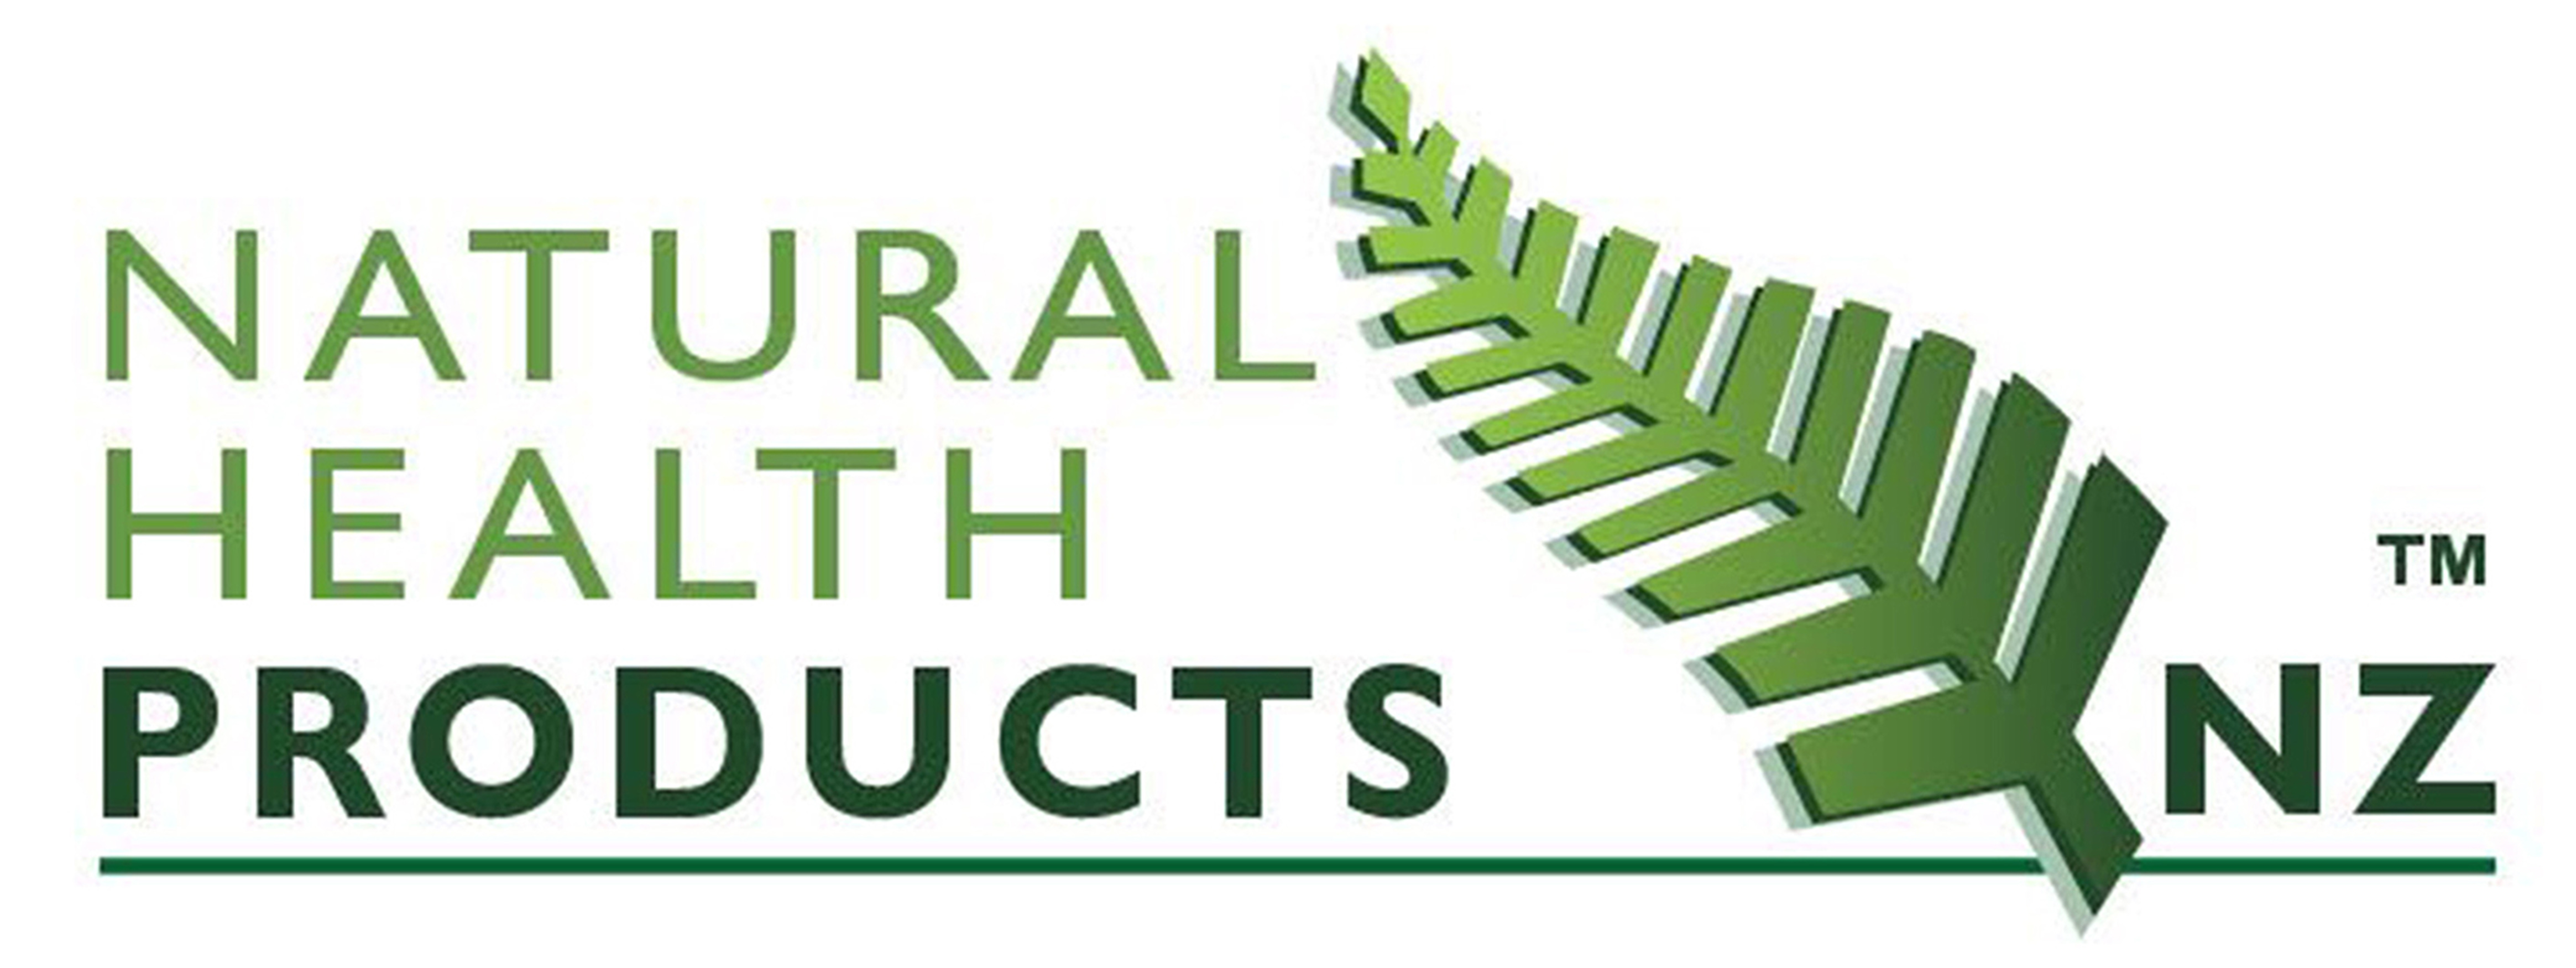 naturalproductsnz.org